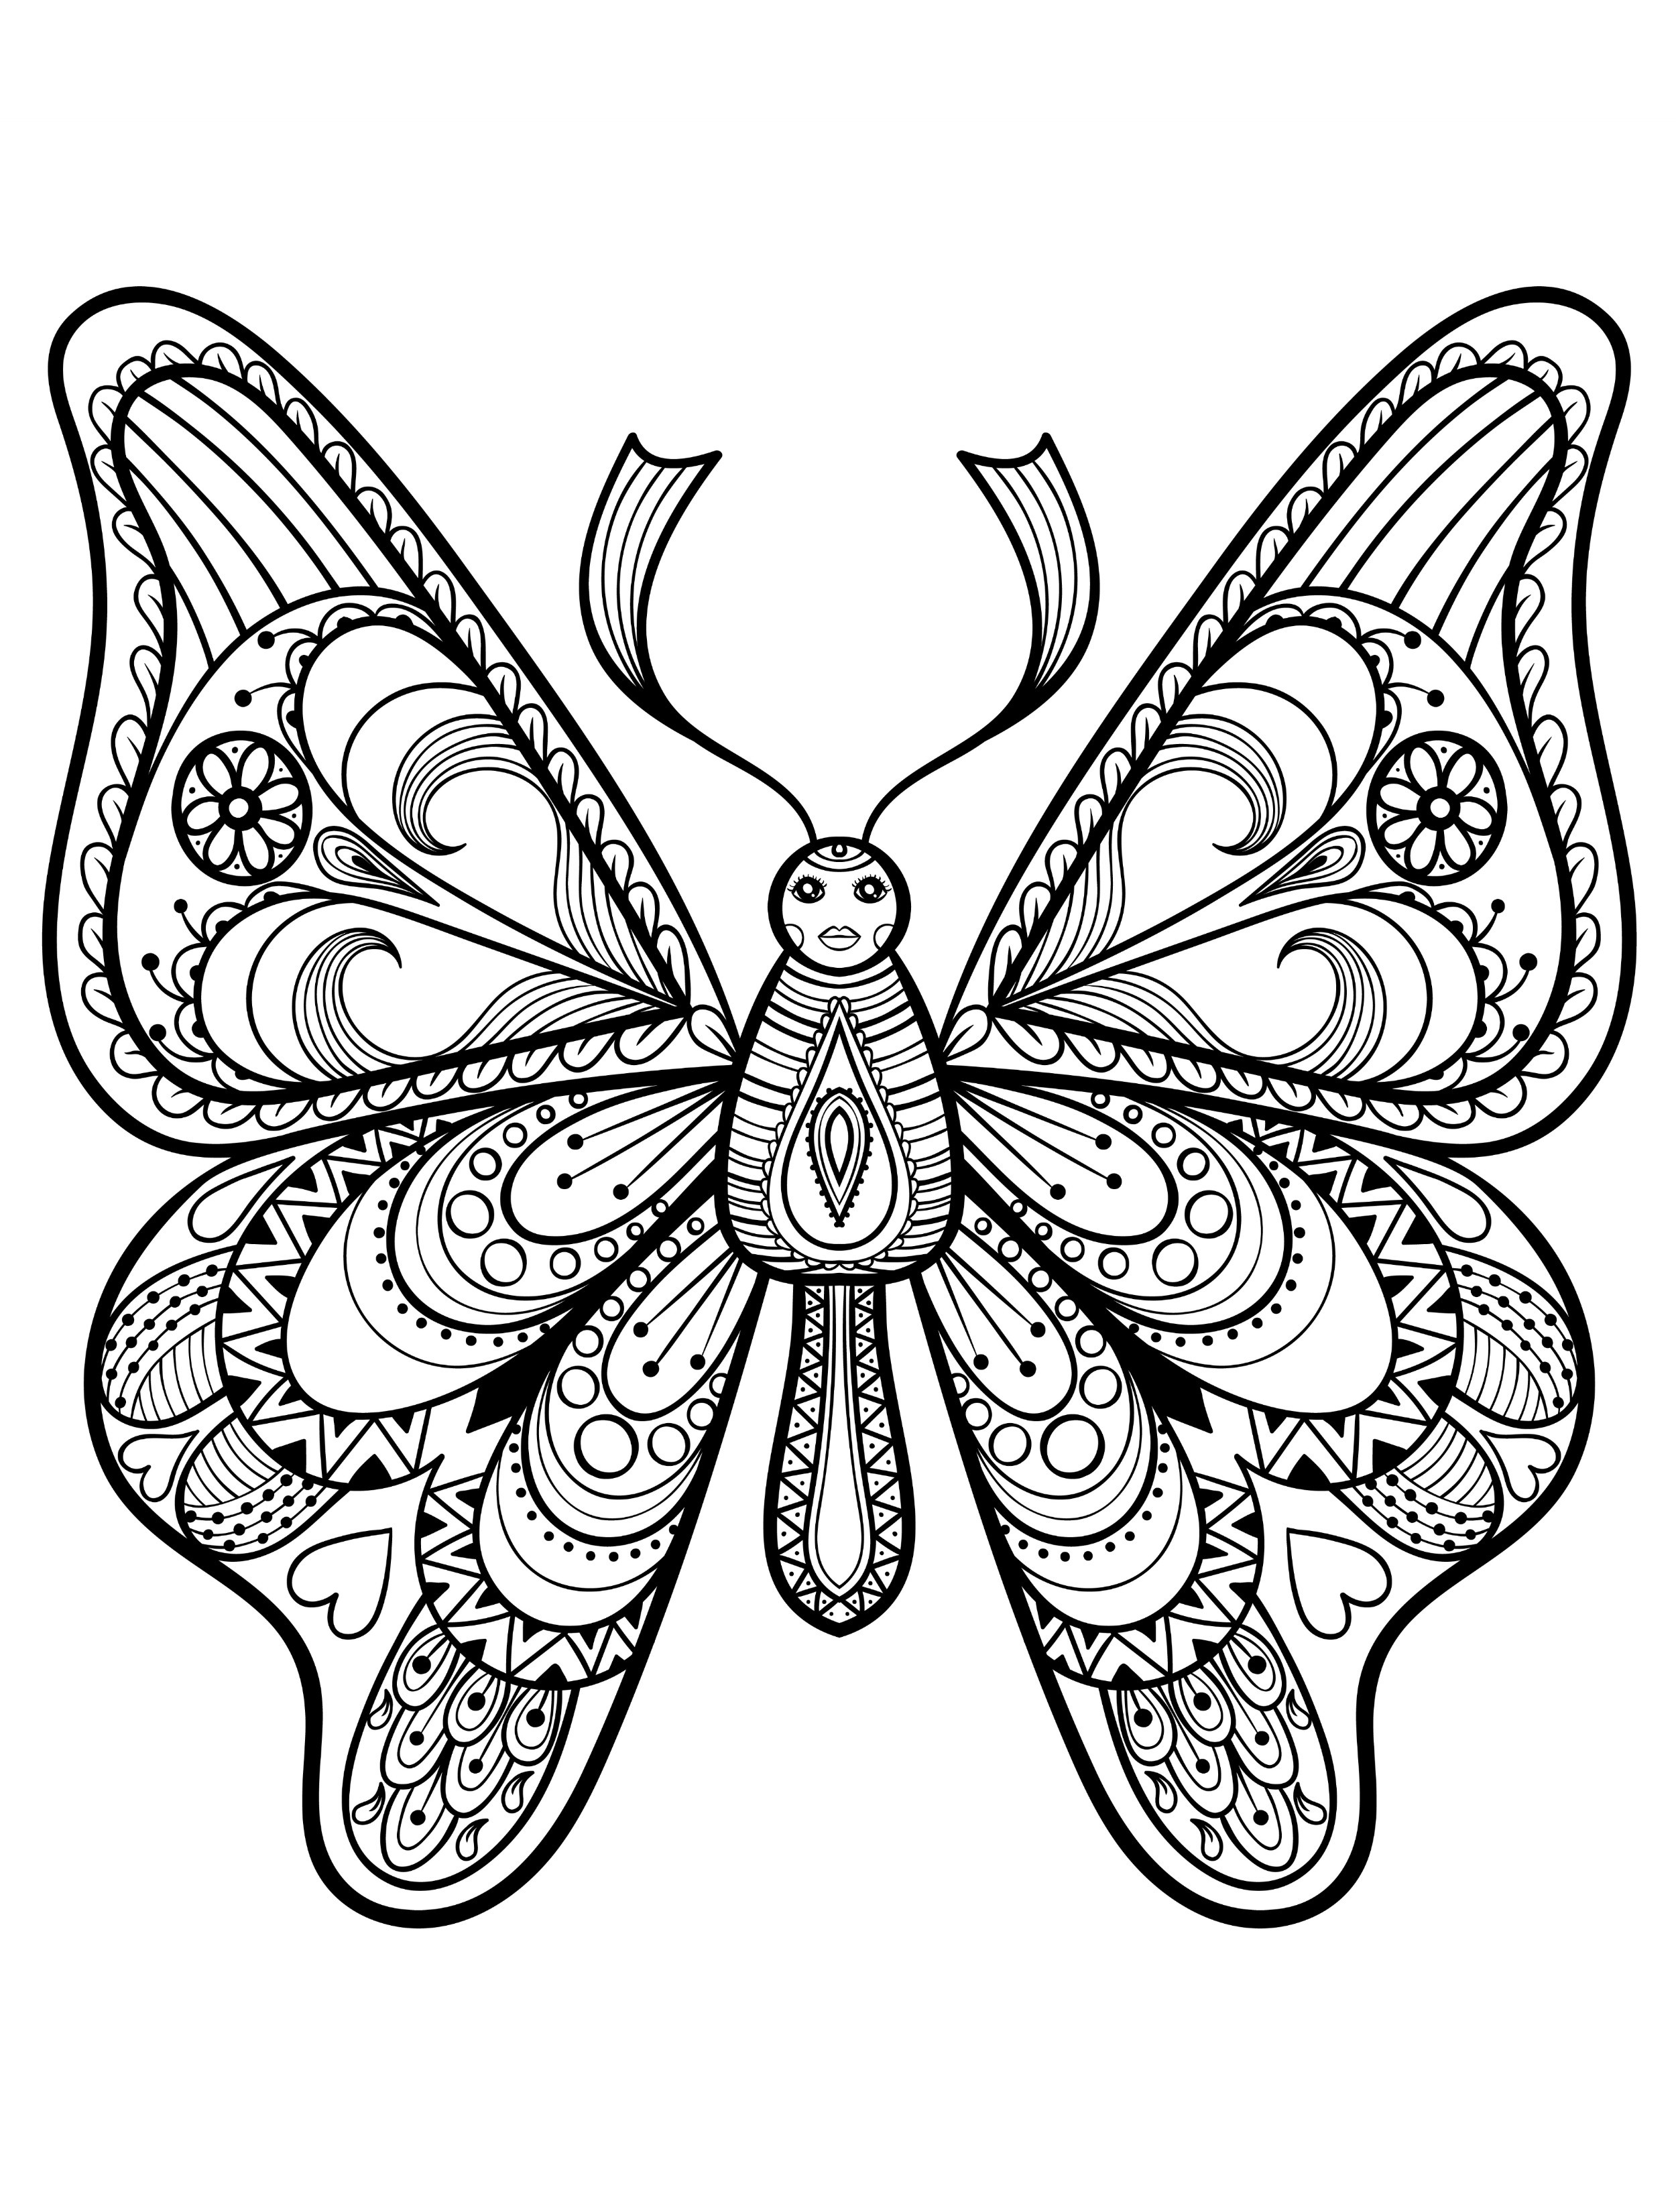 Best ideas about Pretty Coloring Pages For Adults . Save or Pin 23 Free Printable Insect & Animal Adult Coloring Pages Now.